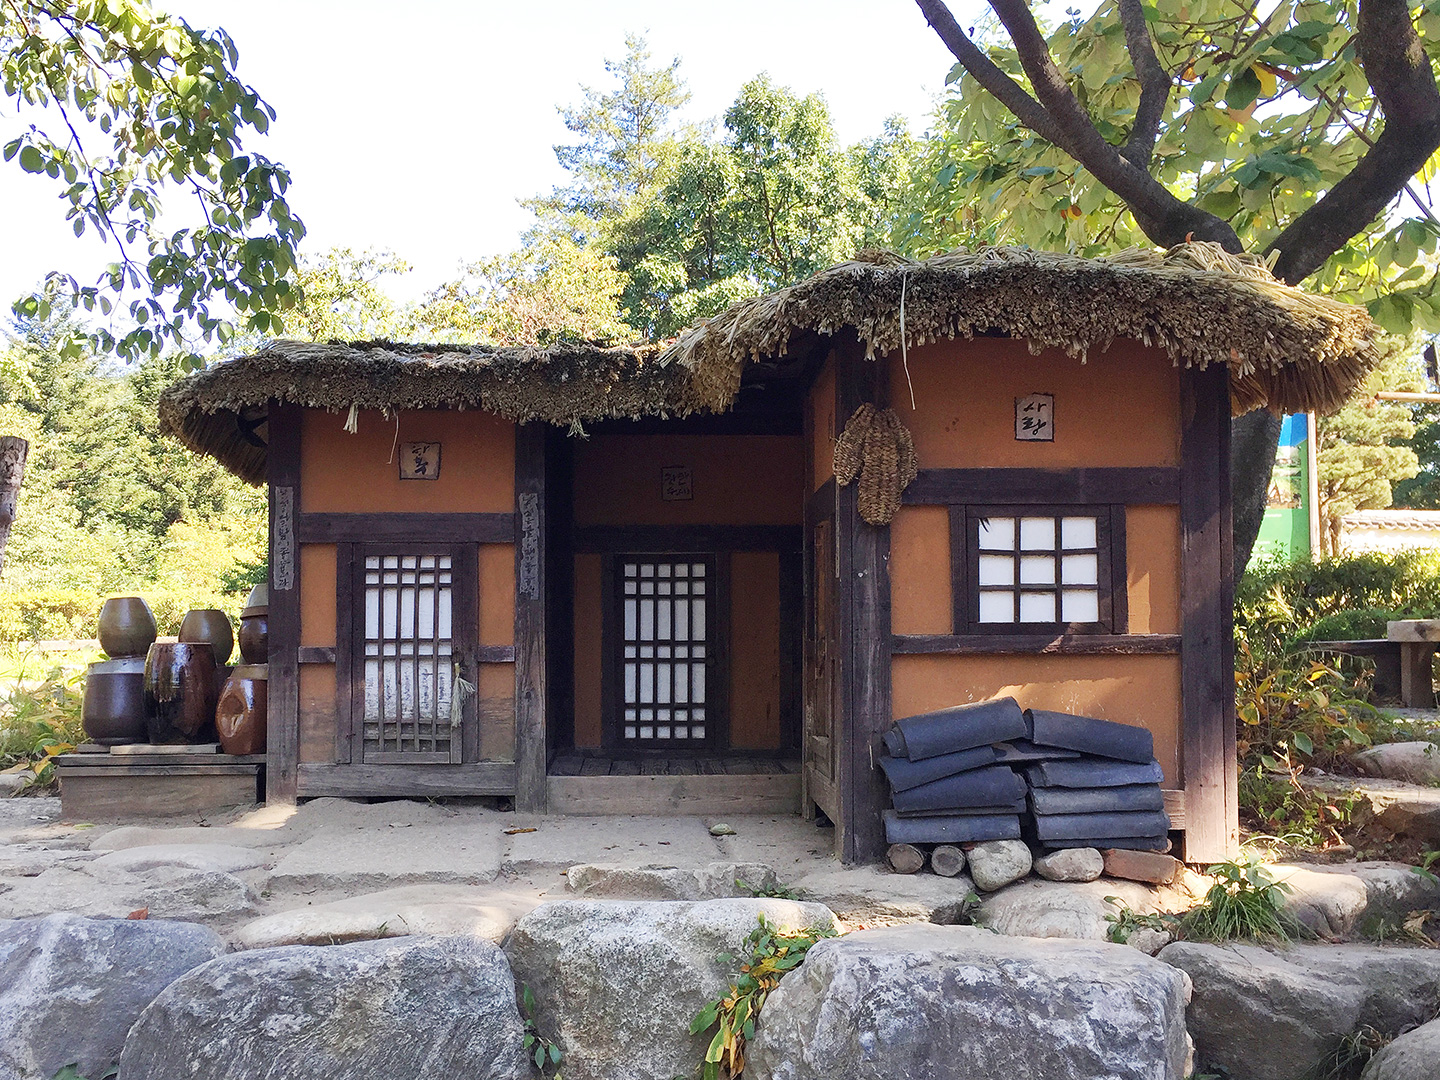 Miniature sized examples of less prehistoric, yet still traditional Korean architecture.